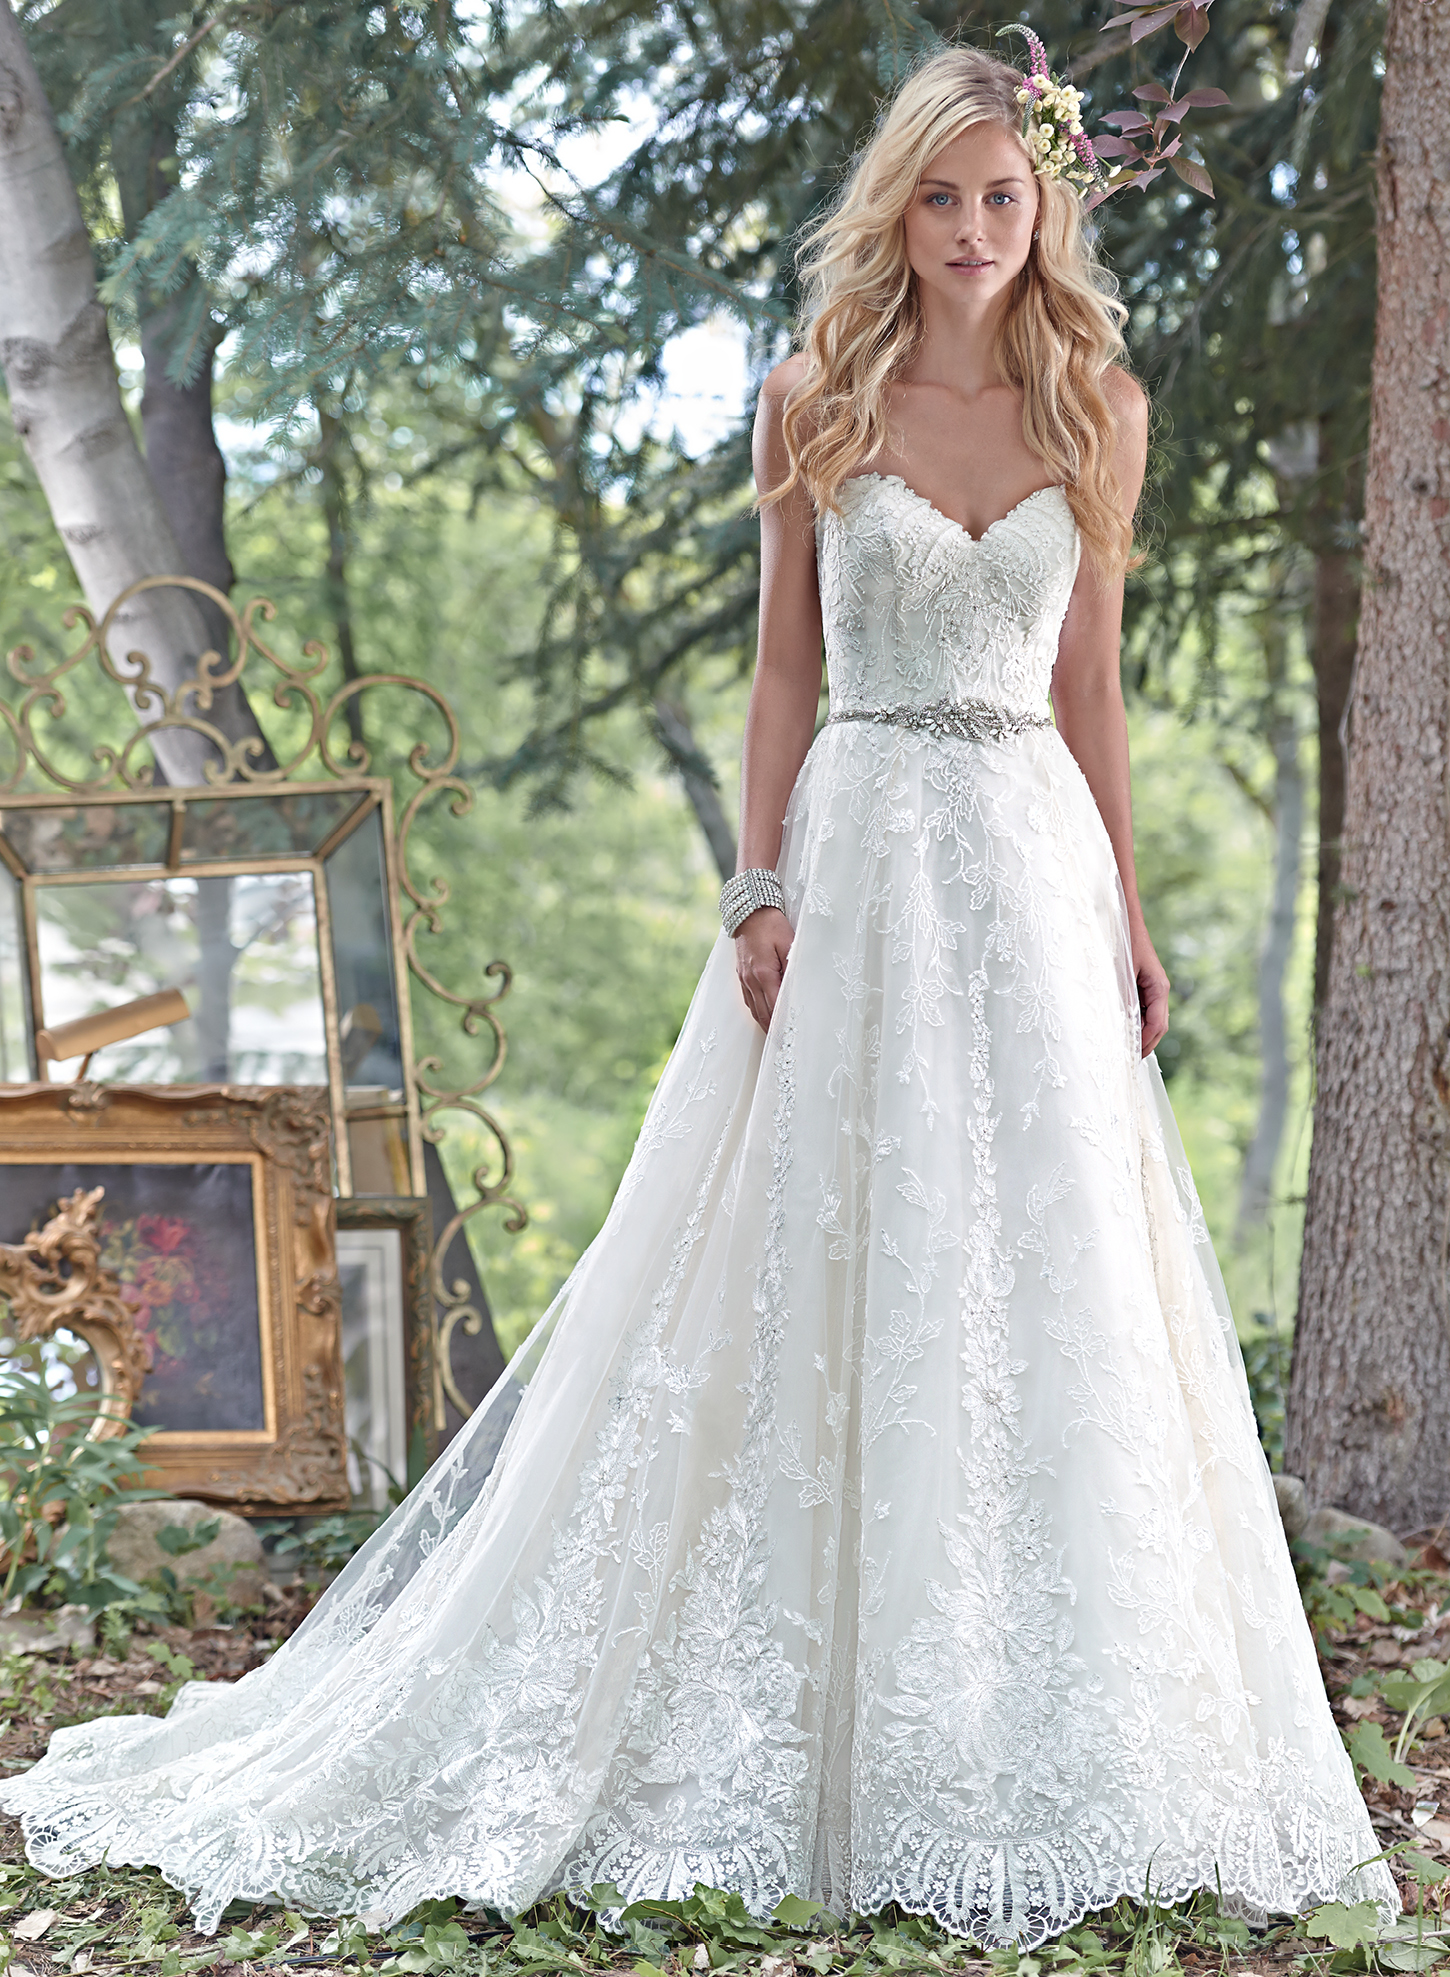 cd46281d9d74 Ball Gown Wedding Dress | Kleinfeld Bridal